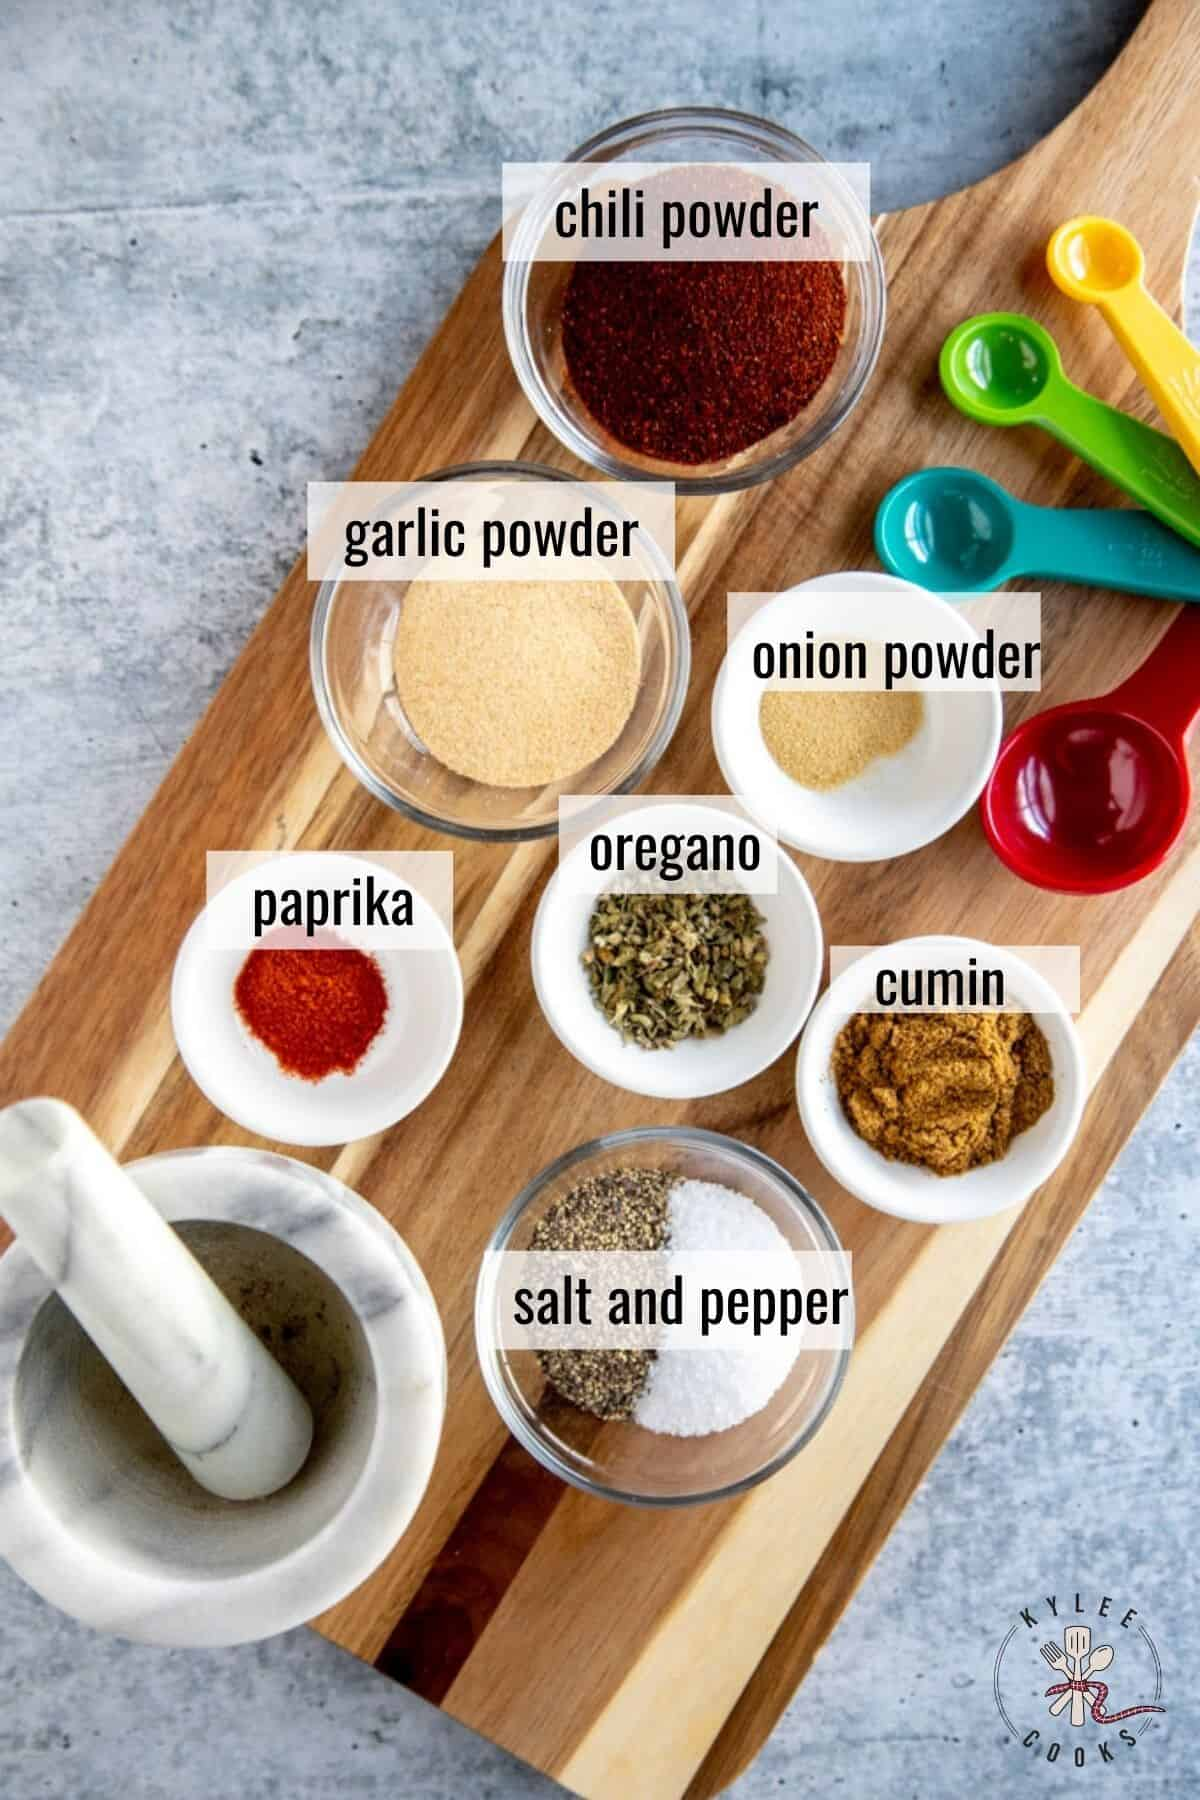 ingredients for taco seasoning laid out and labeled